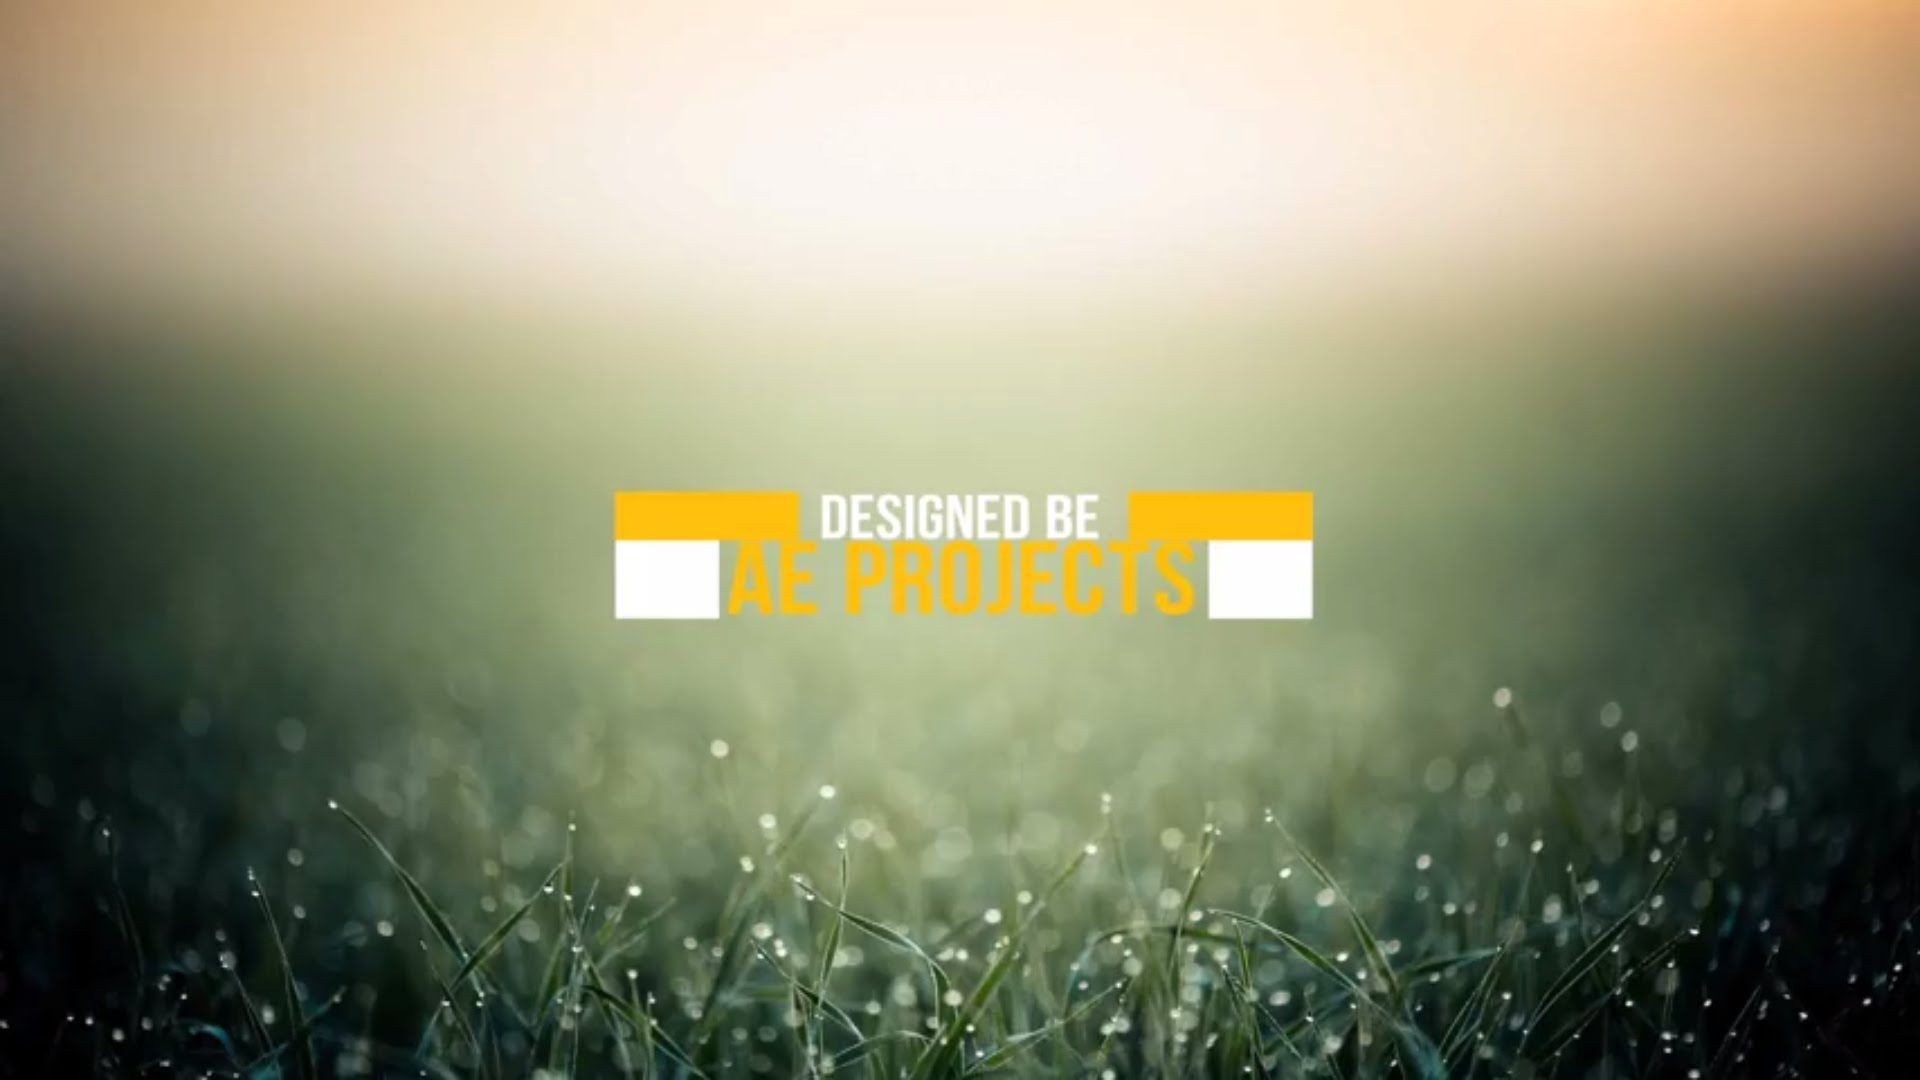 006 Dreaded Adobe After Effect Free Template High Definition  Templates Title Wedding Project Logo1920